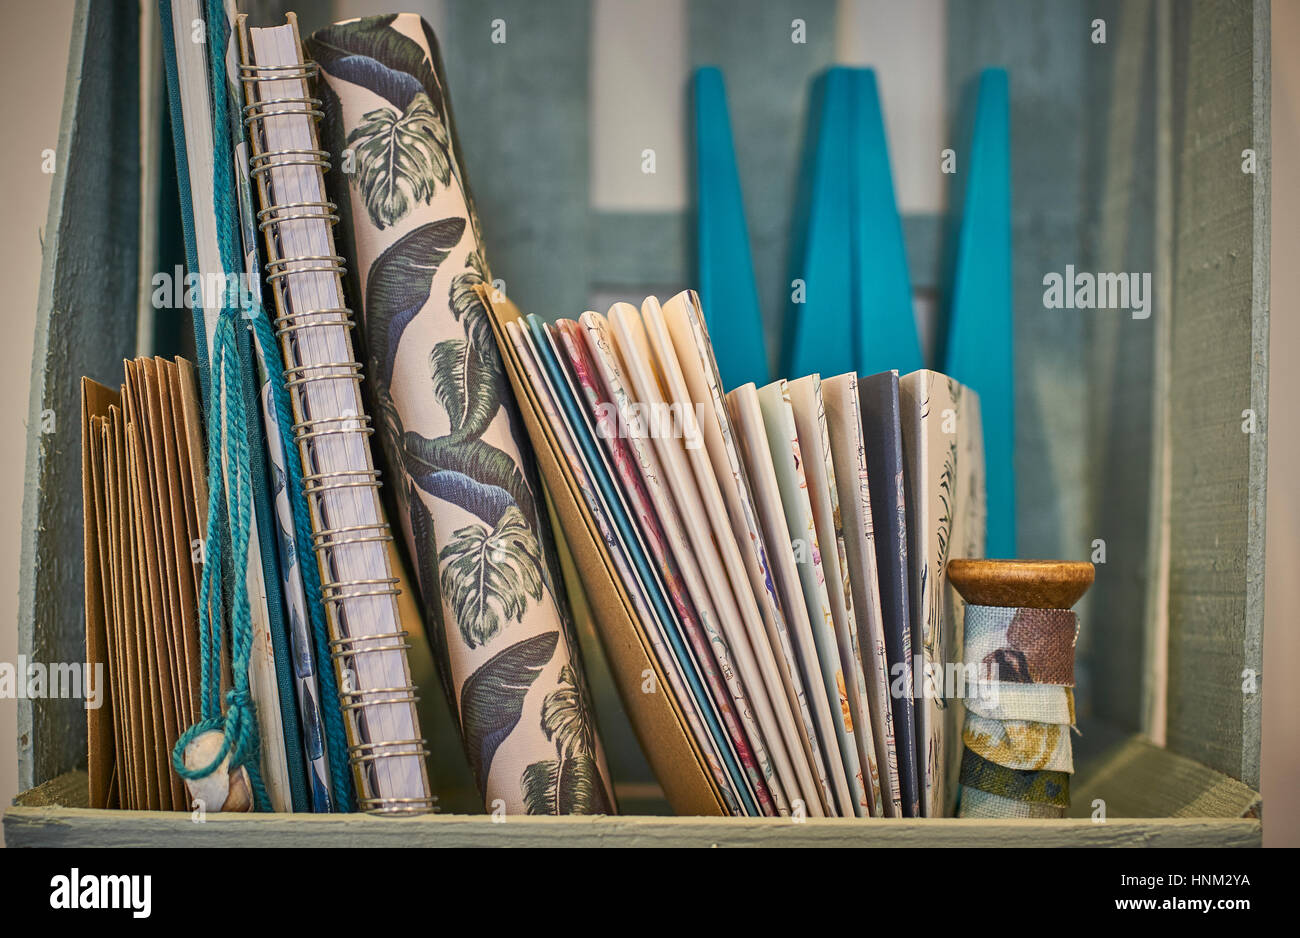 A Collection of designer stationary on a shelf - Stock Image